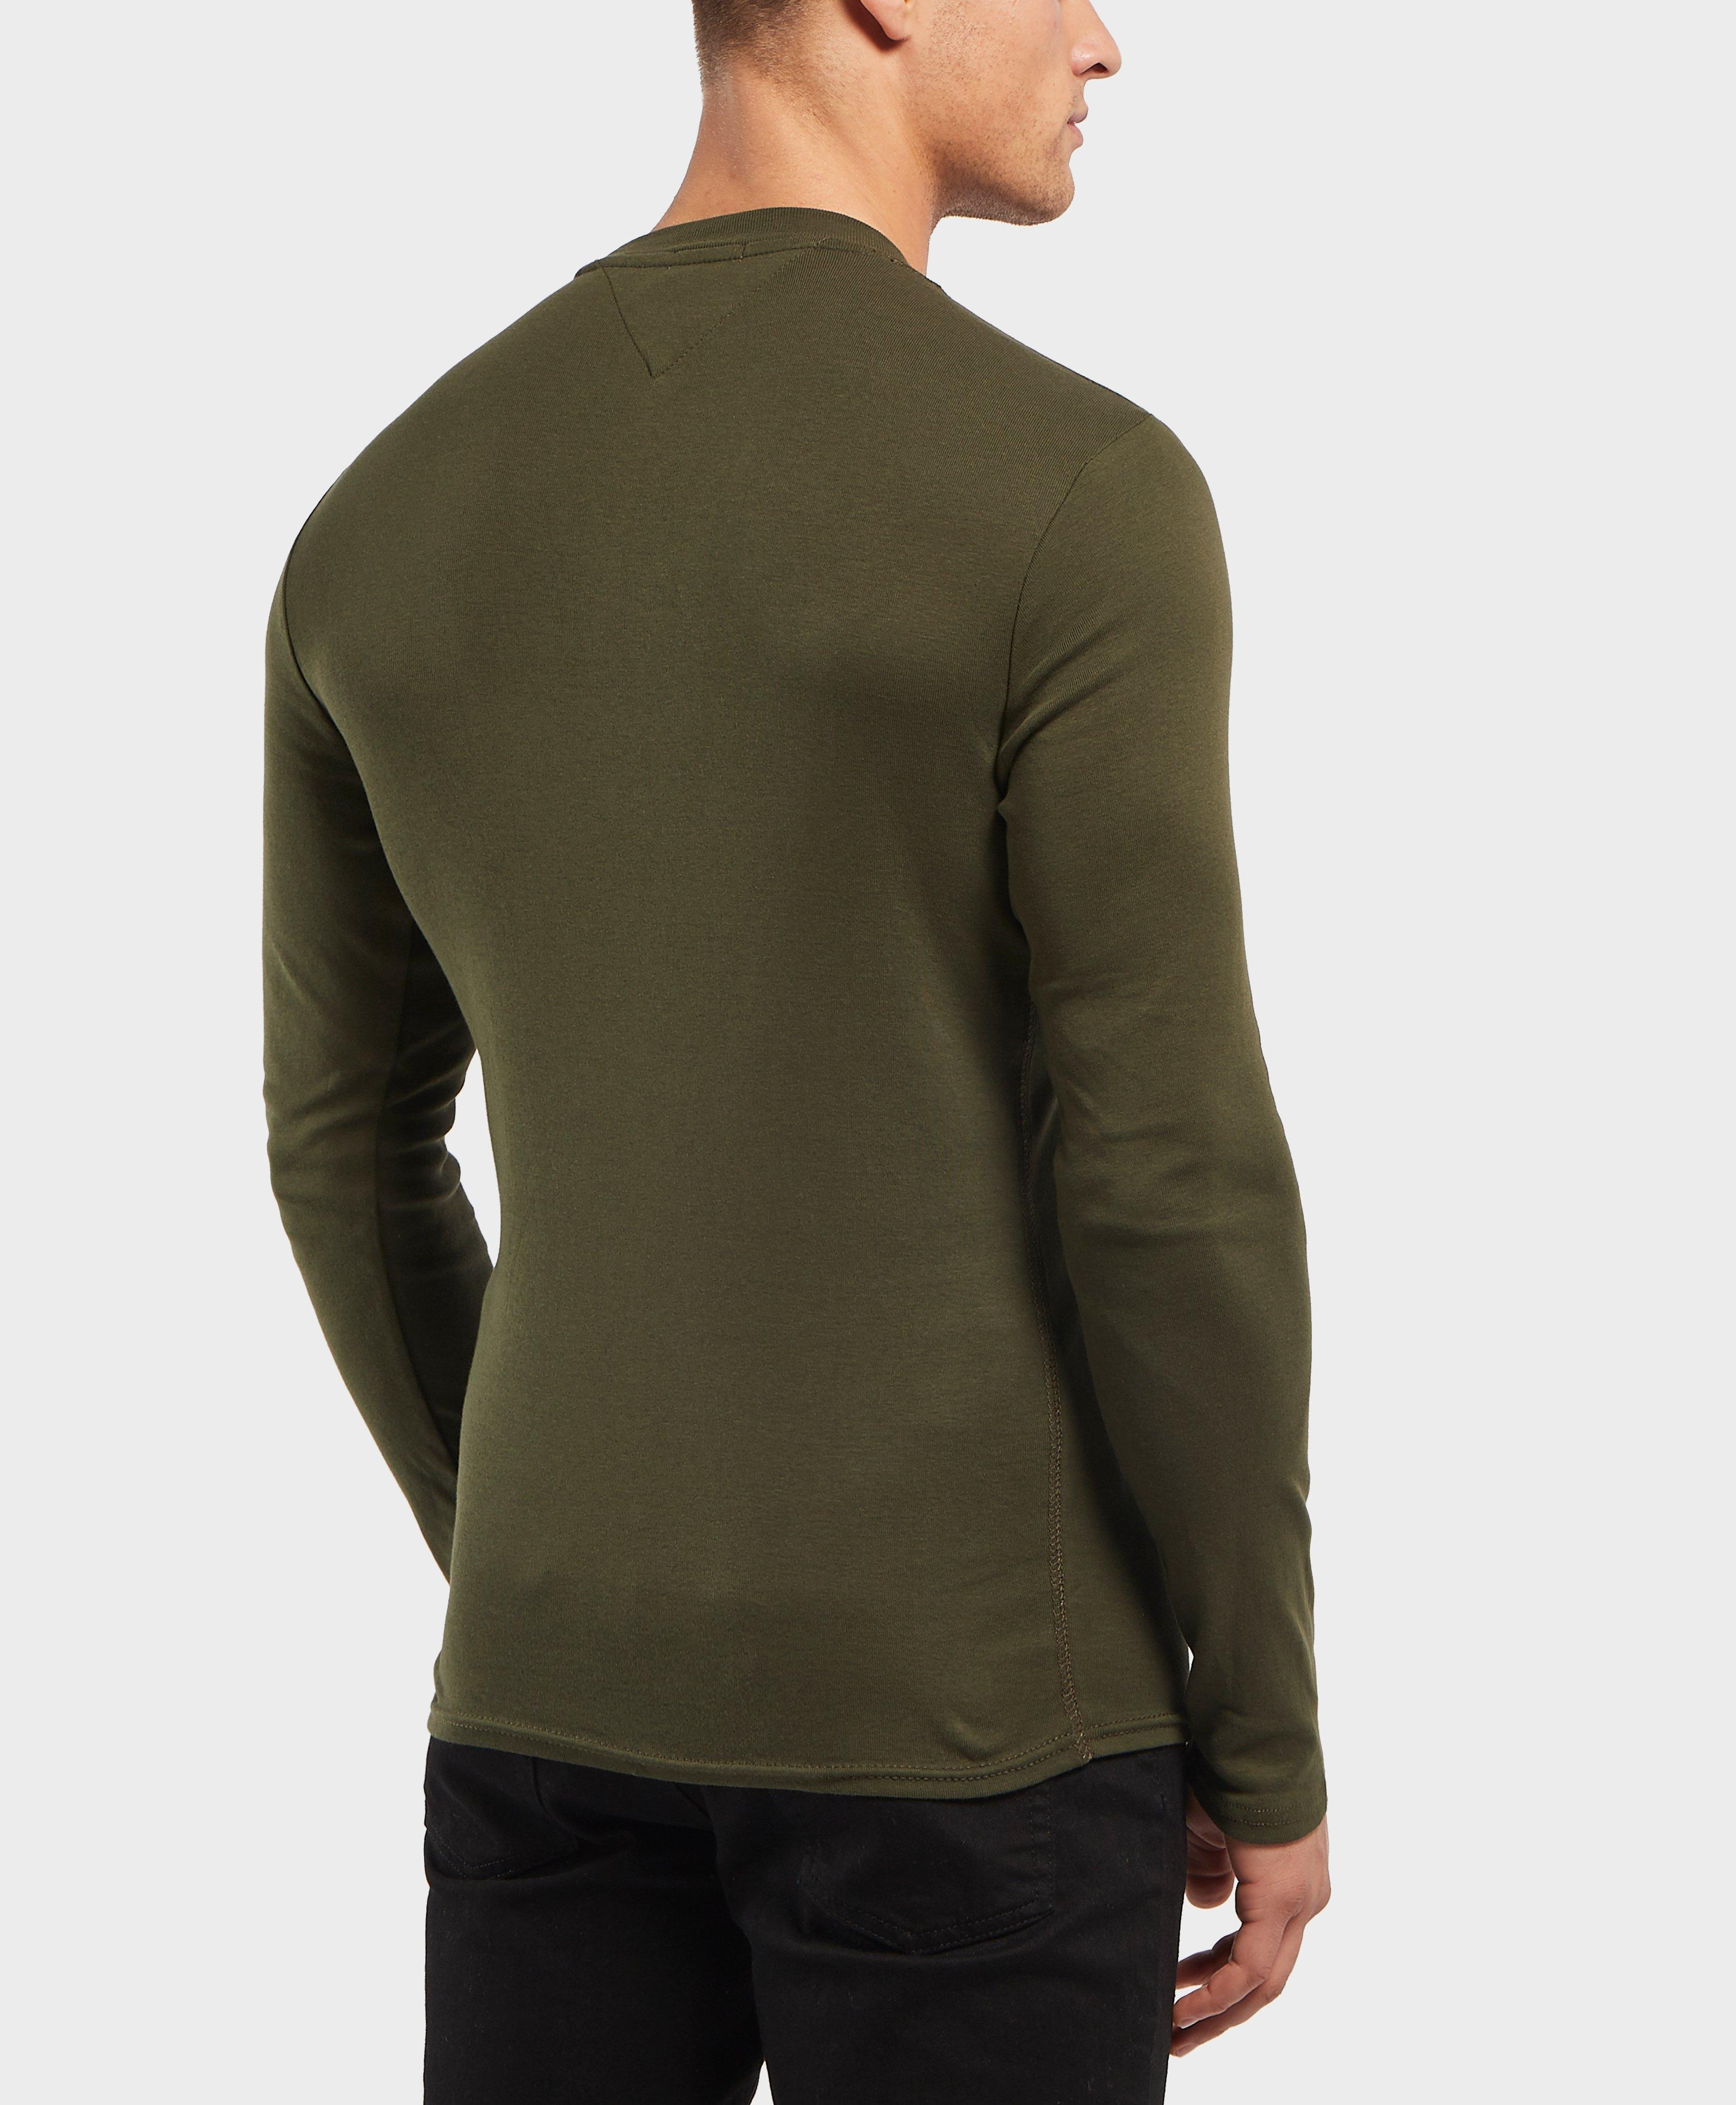 Lyst - Tommy Hilfiger Long Sleeve Crew T-shirt in Green for Men 81506e182f